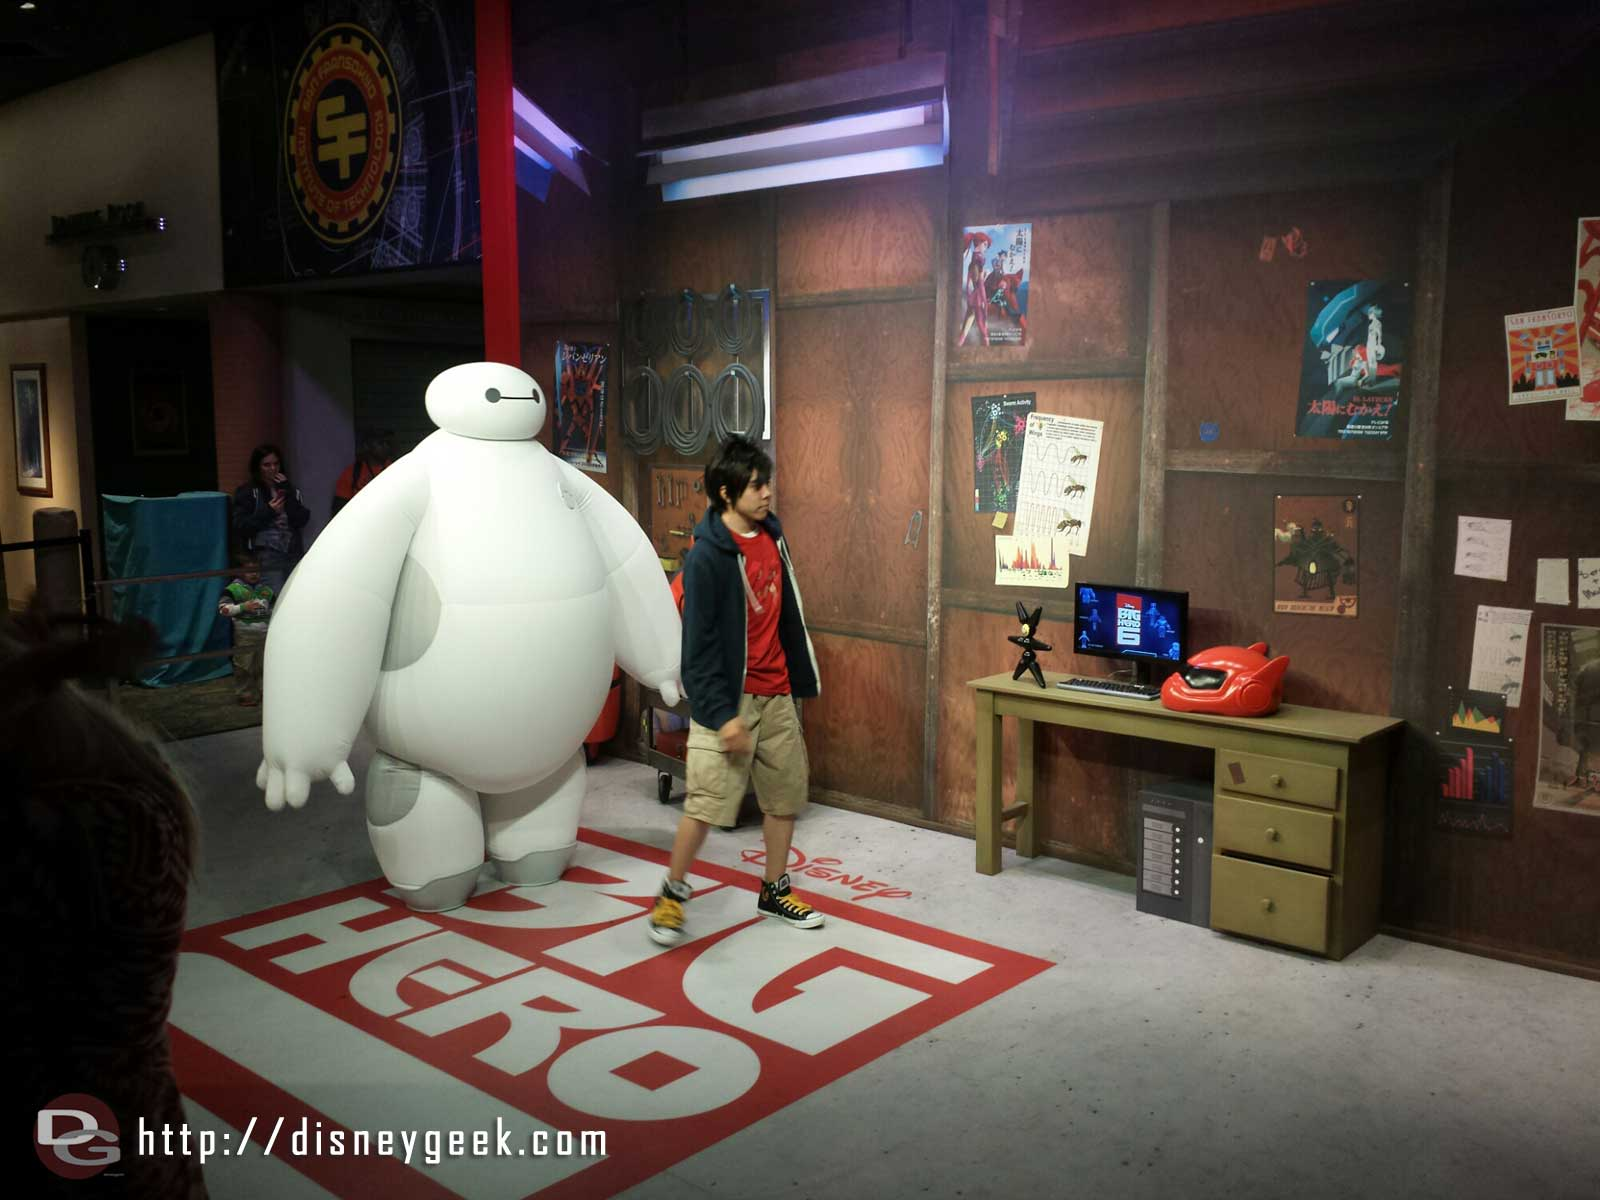 Hiro and Baymax #BigHero6 – Disney's Hollywood Studios